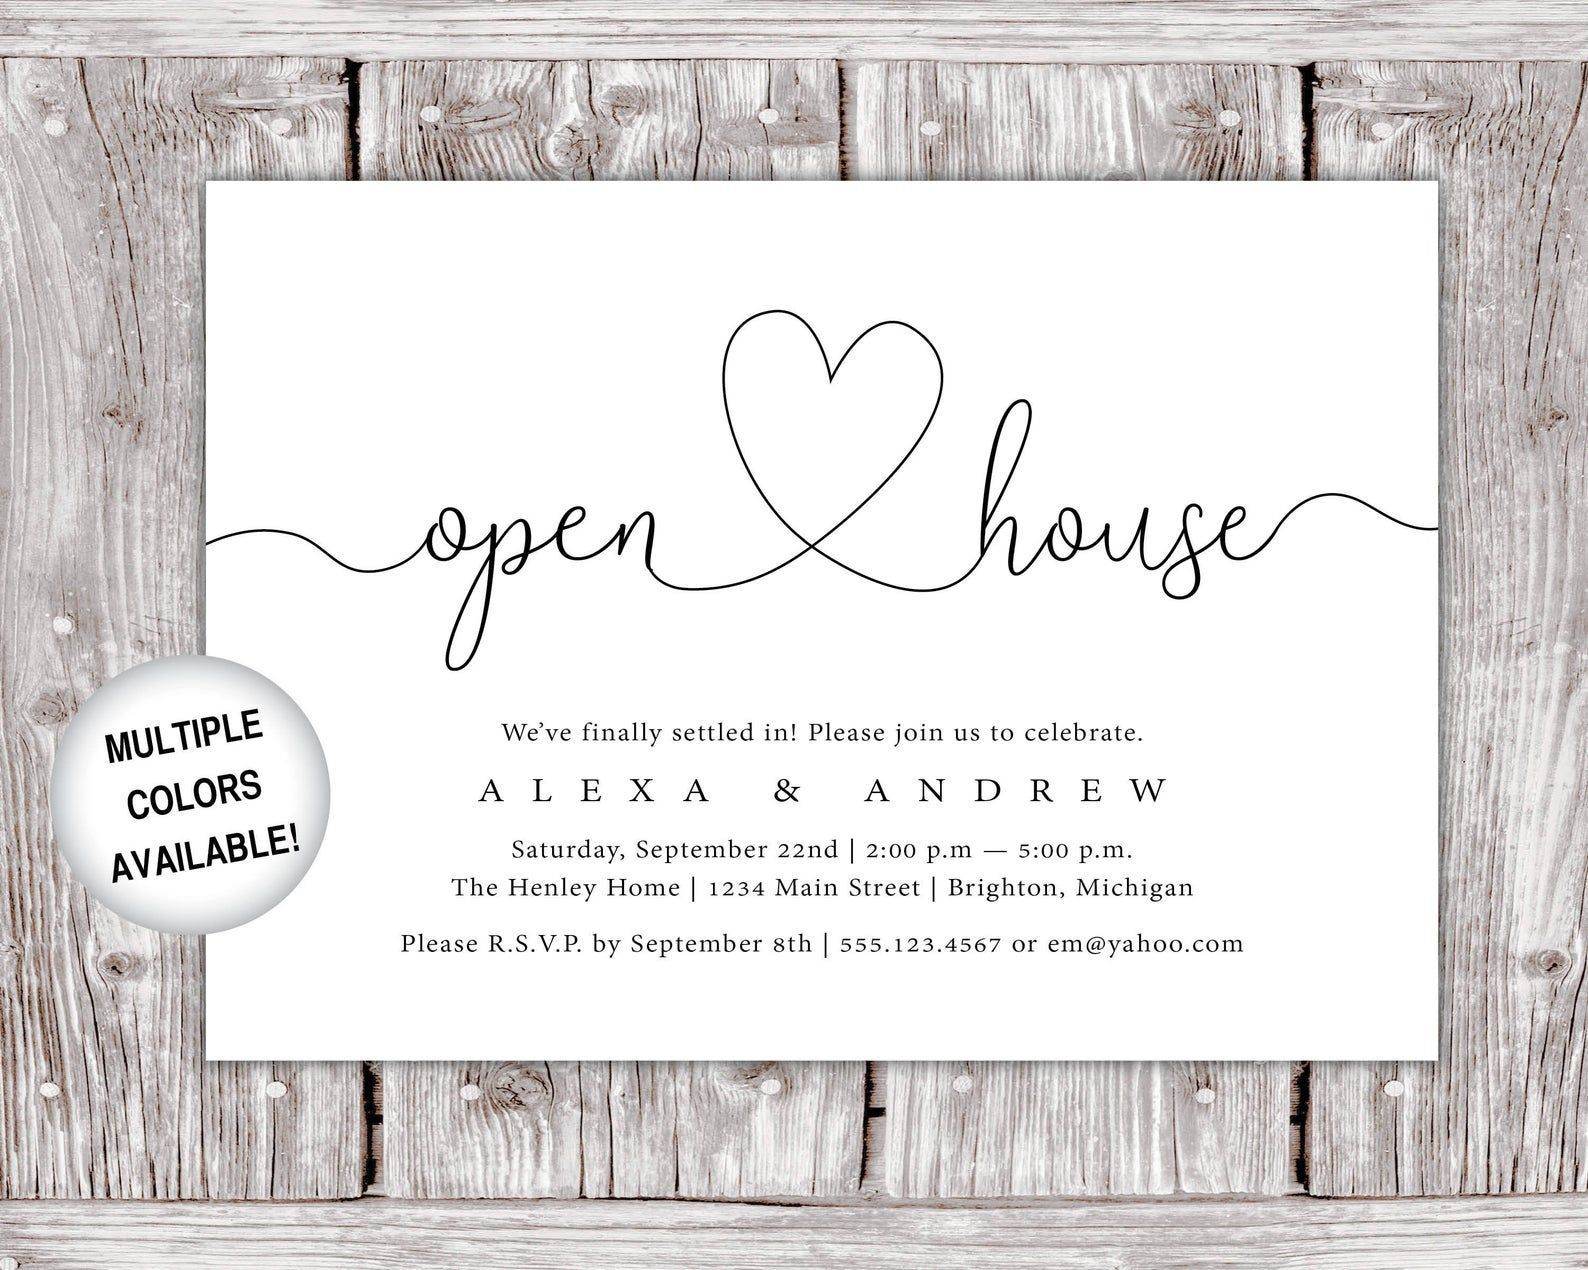 005 Incredible Open House Invitation Template High Def  Templates Free Printable BusinesFull